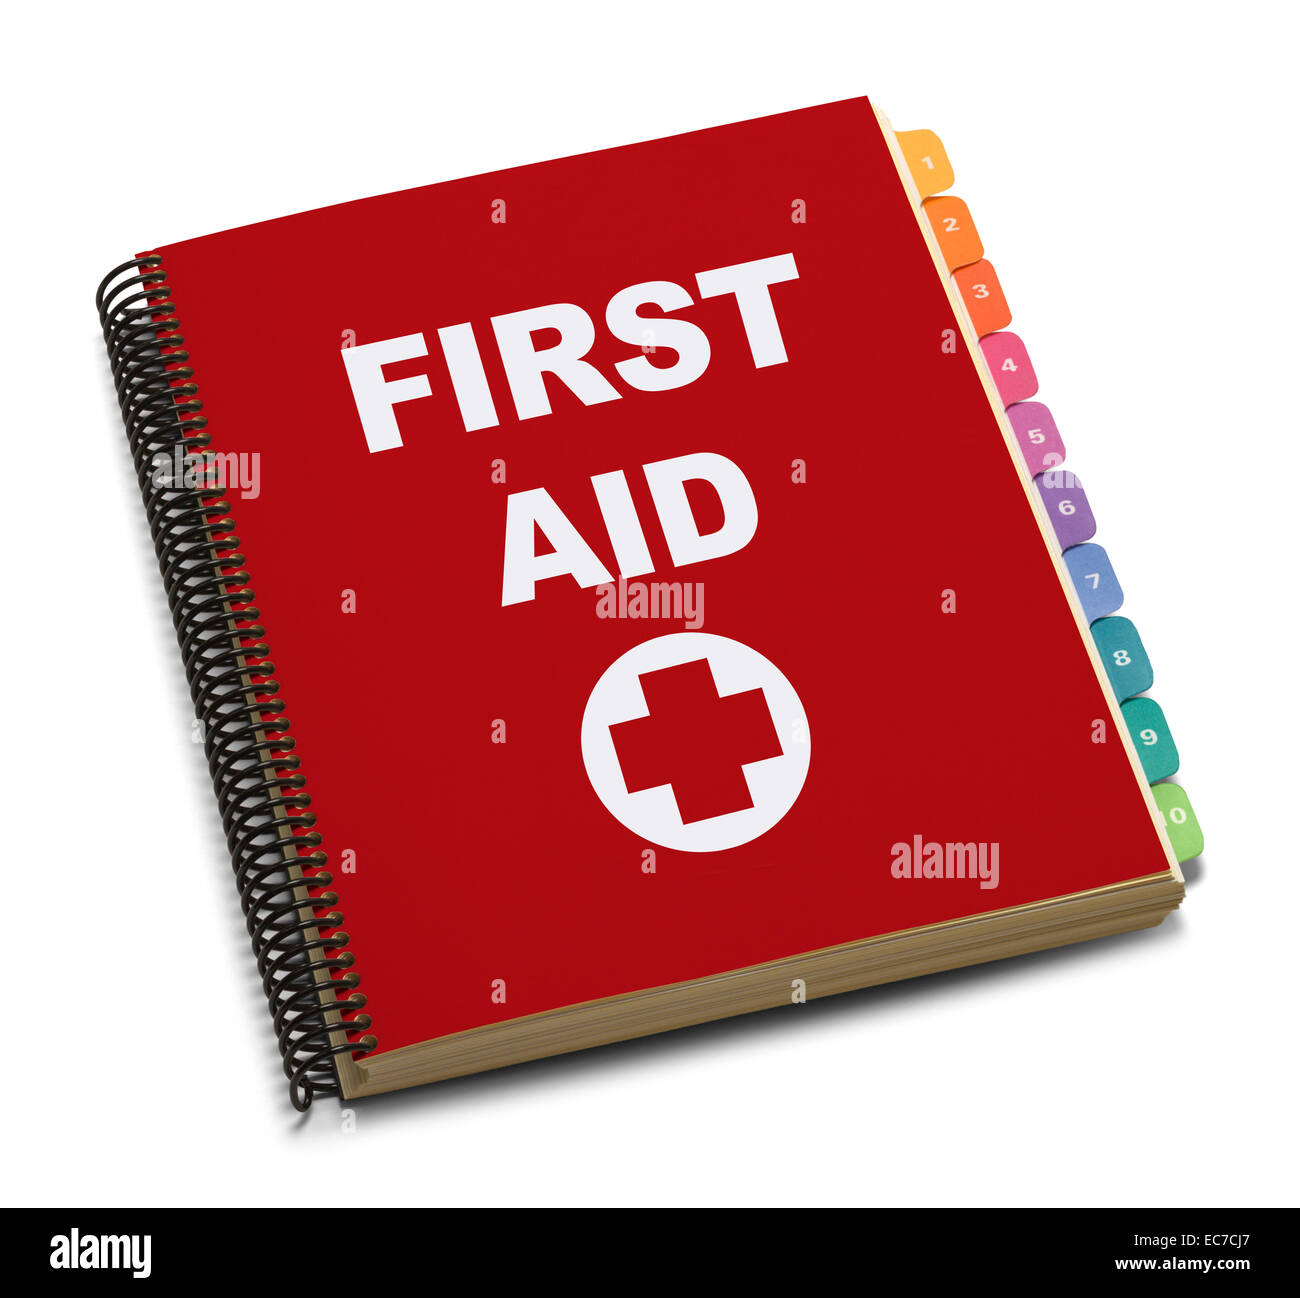 Red Spiral Bound First Aid Handbook Isolated on White Background. - Stock Image